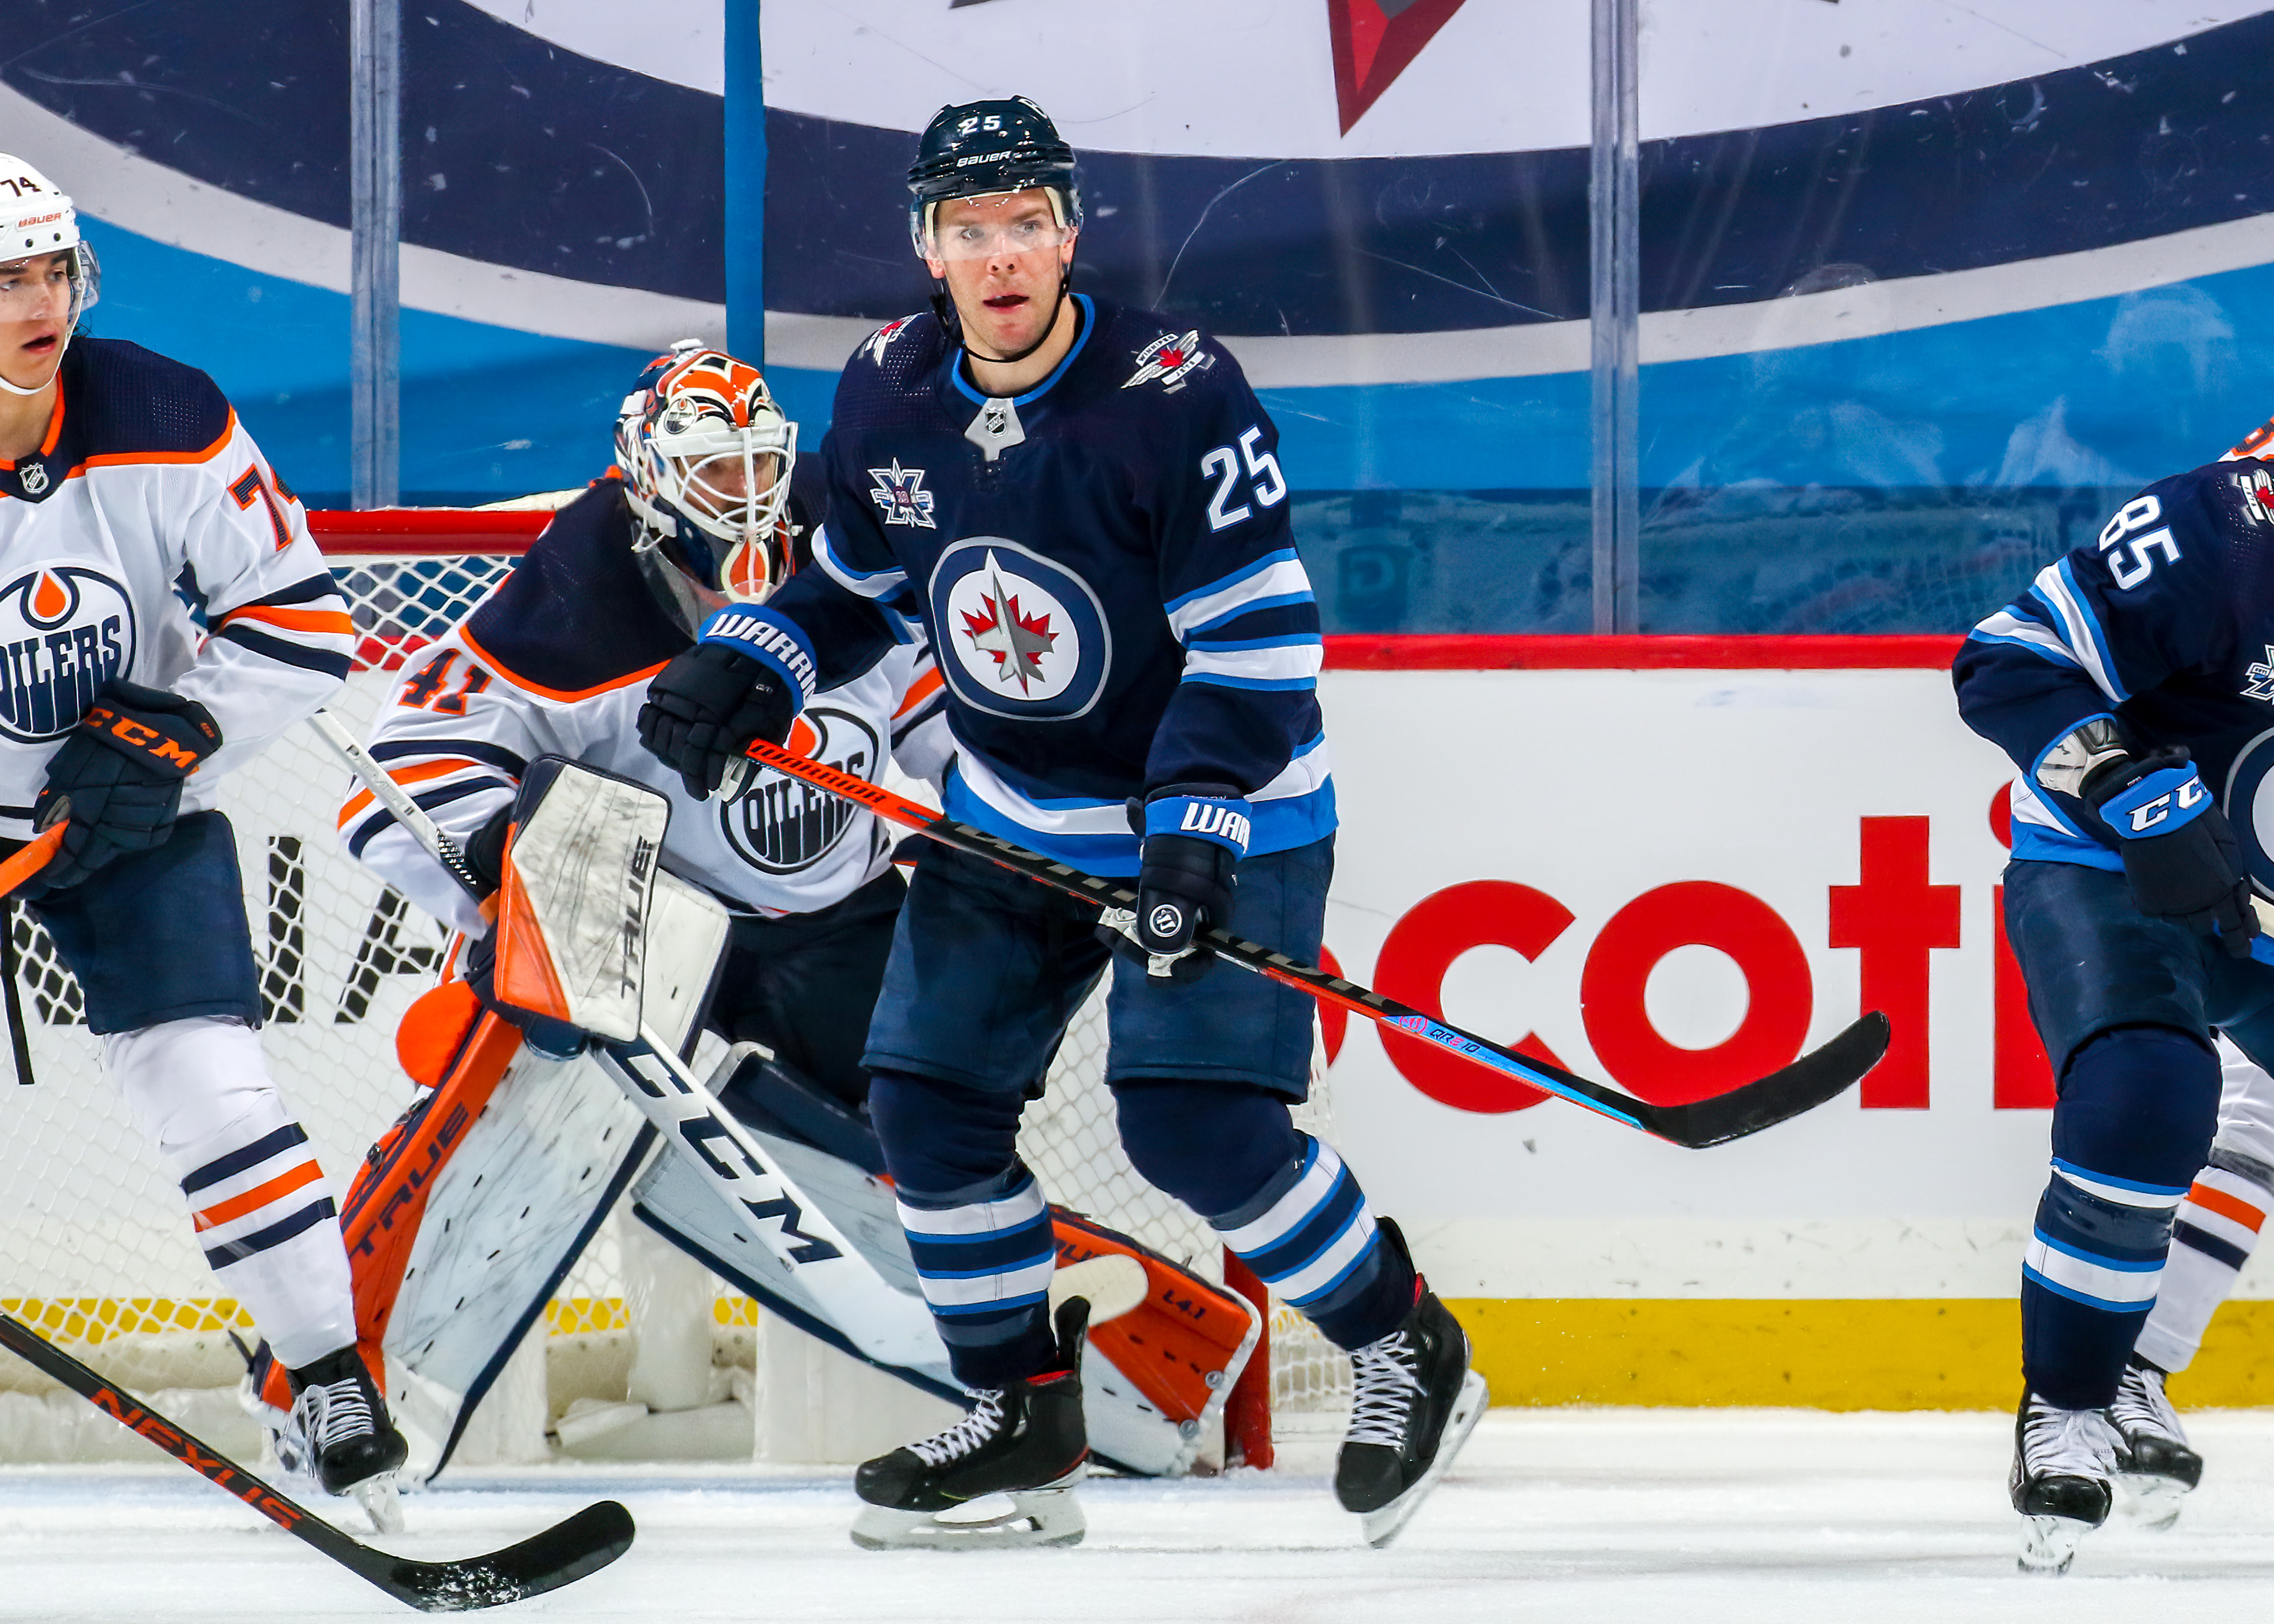 Paul Stastny #25 of the Winnipeg Jets keeps an eye on the play during third period action against the Edmonton Oilers at Bell MTS Place on April 17, 2021